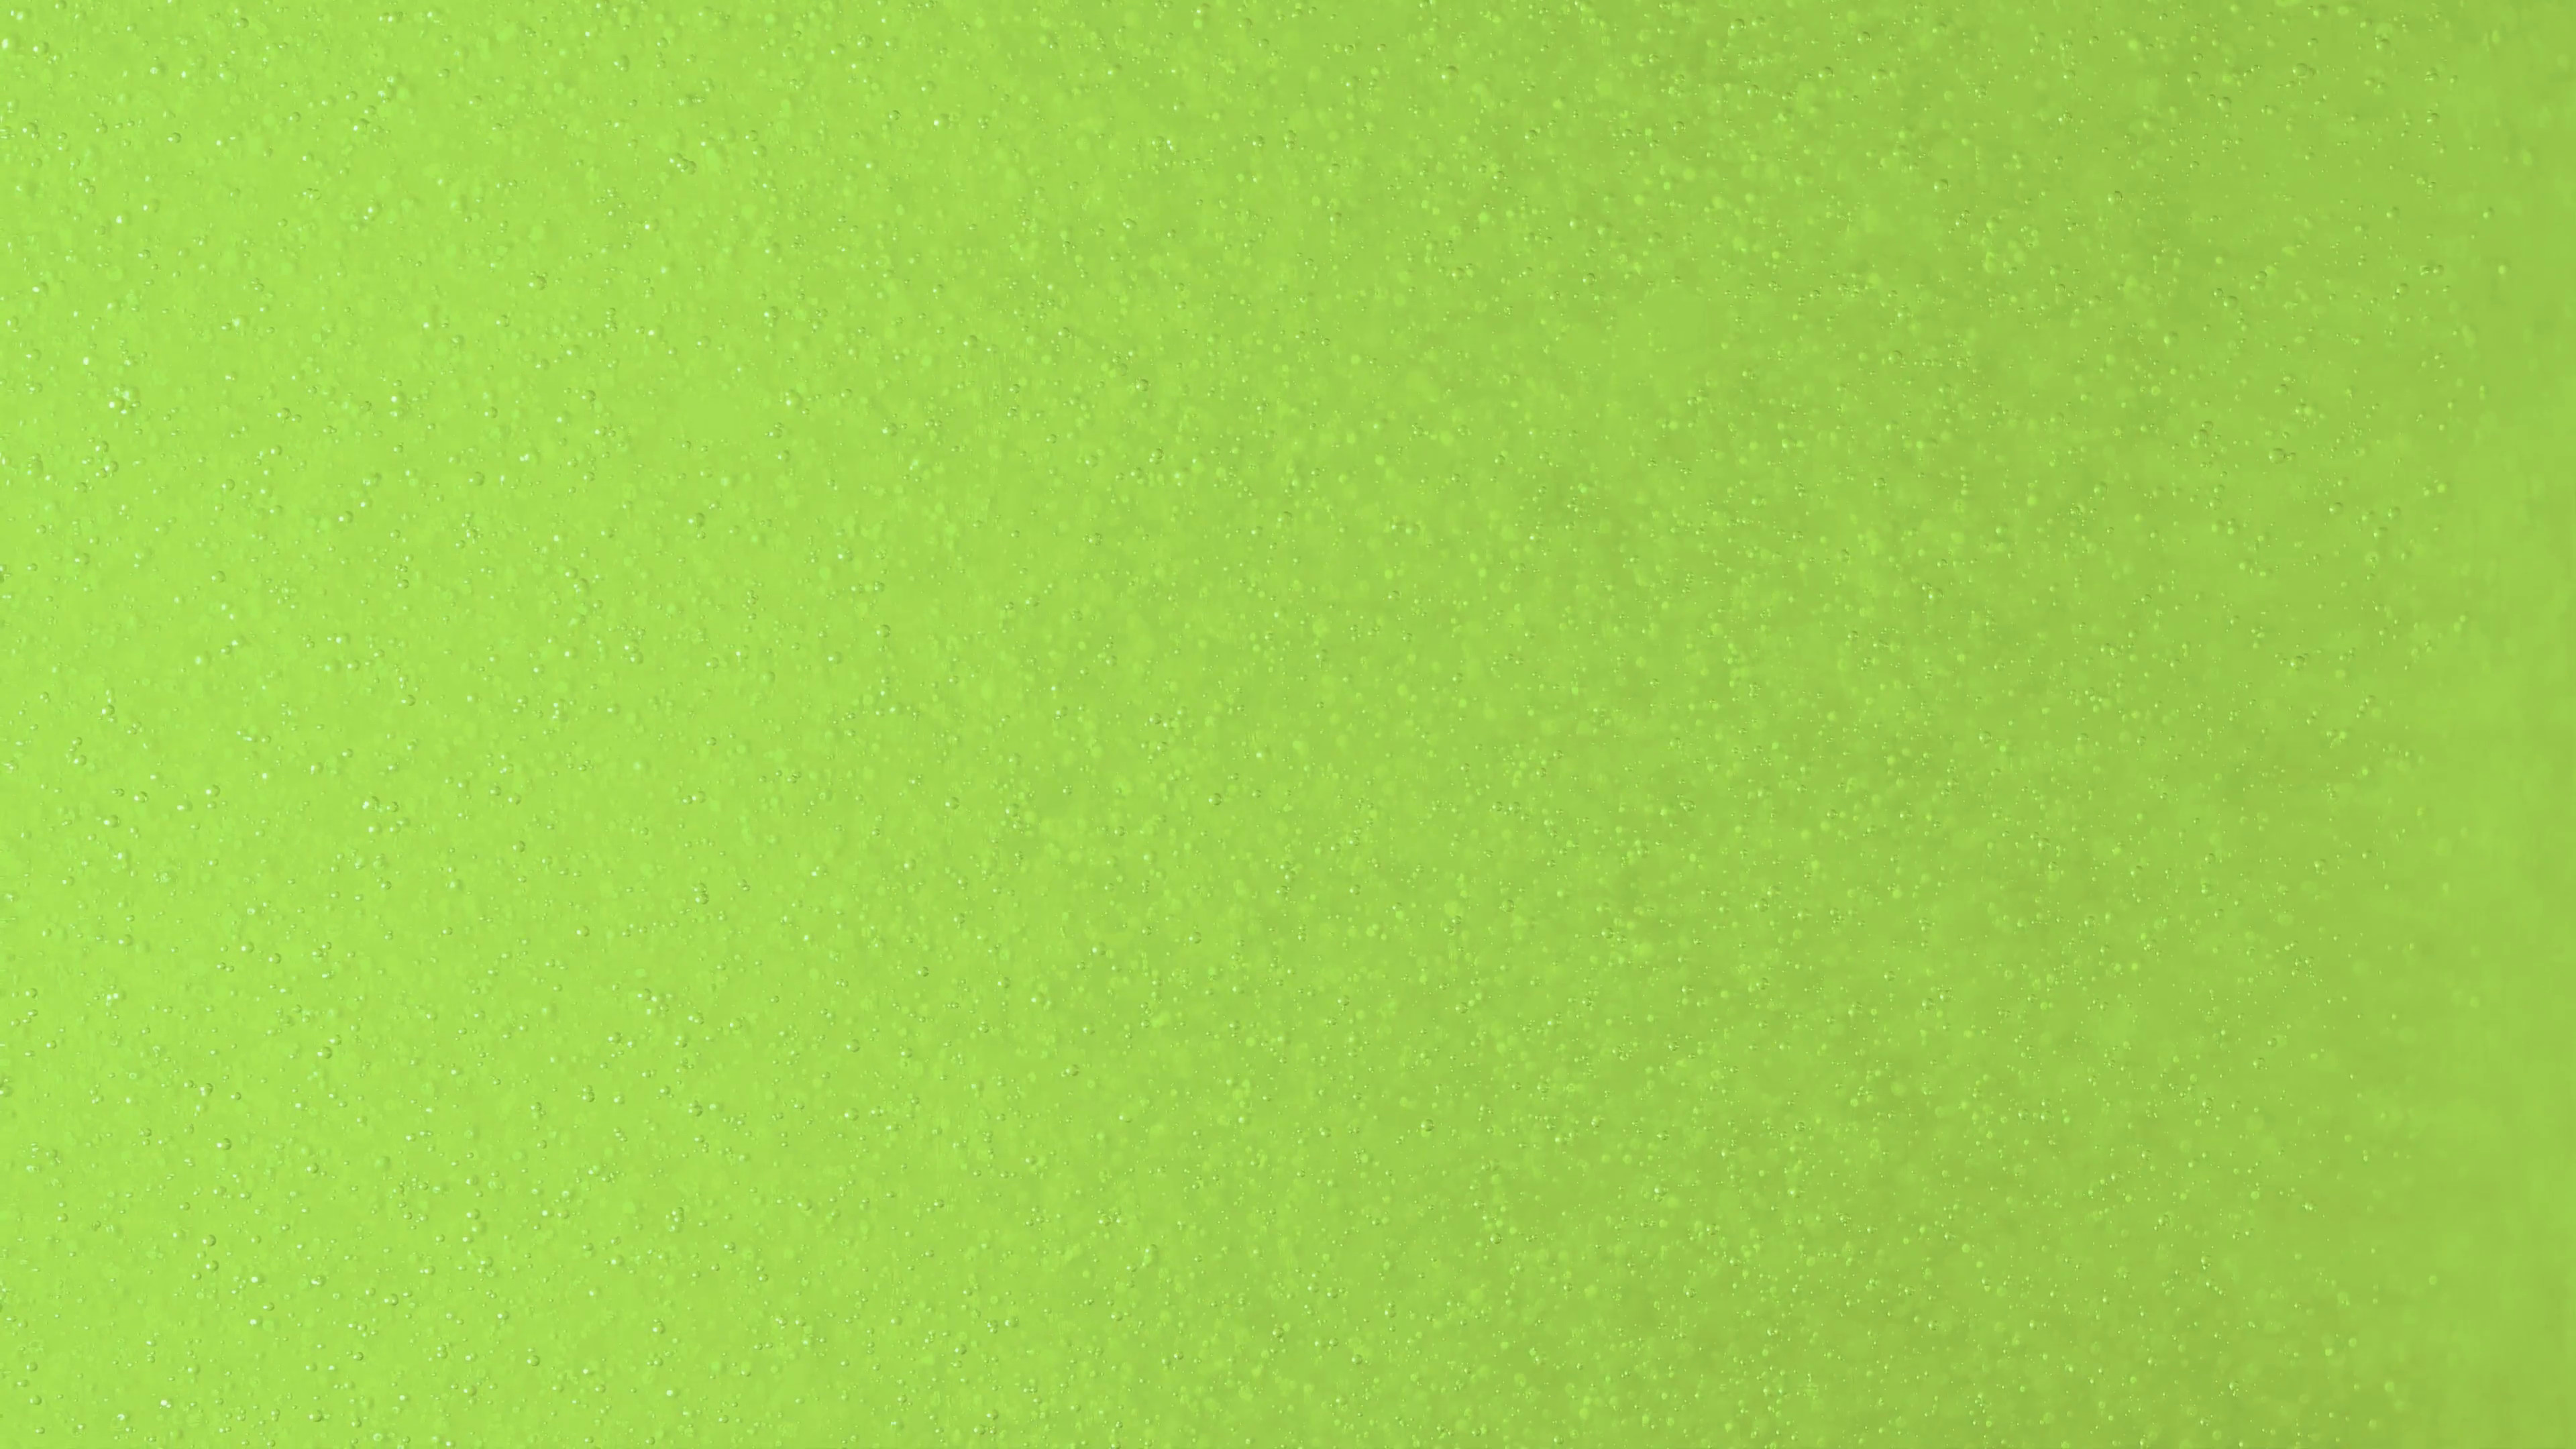 3840x2160 Green Lime soda bubbles background Stock Video Footage - Storyblocks Video